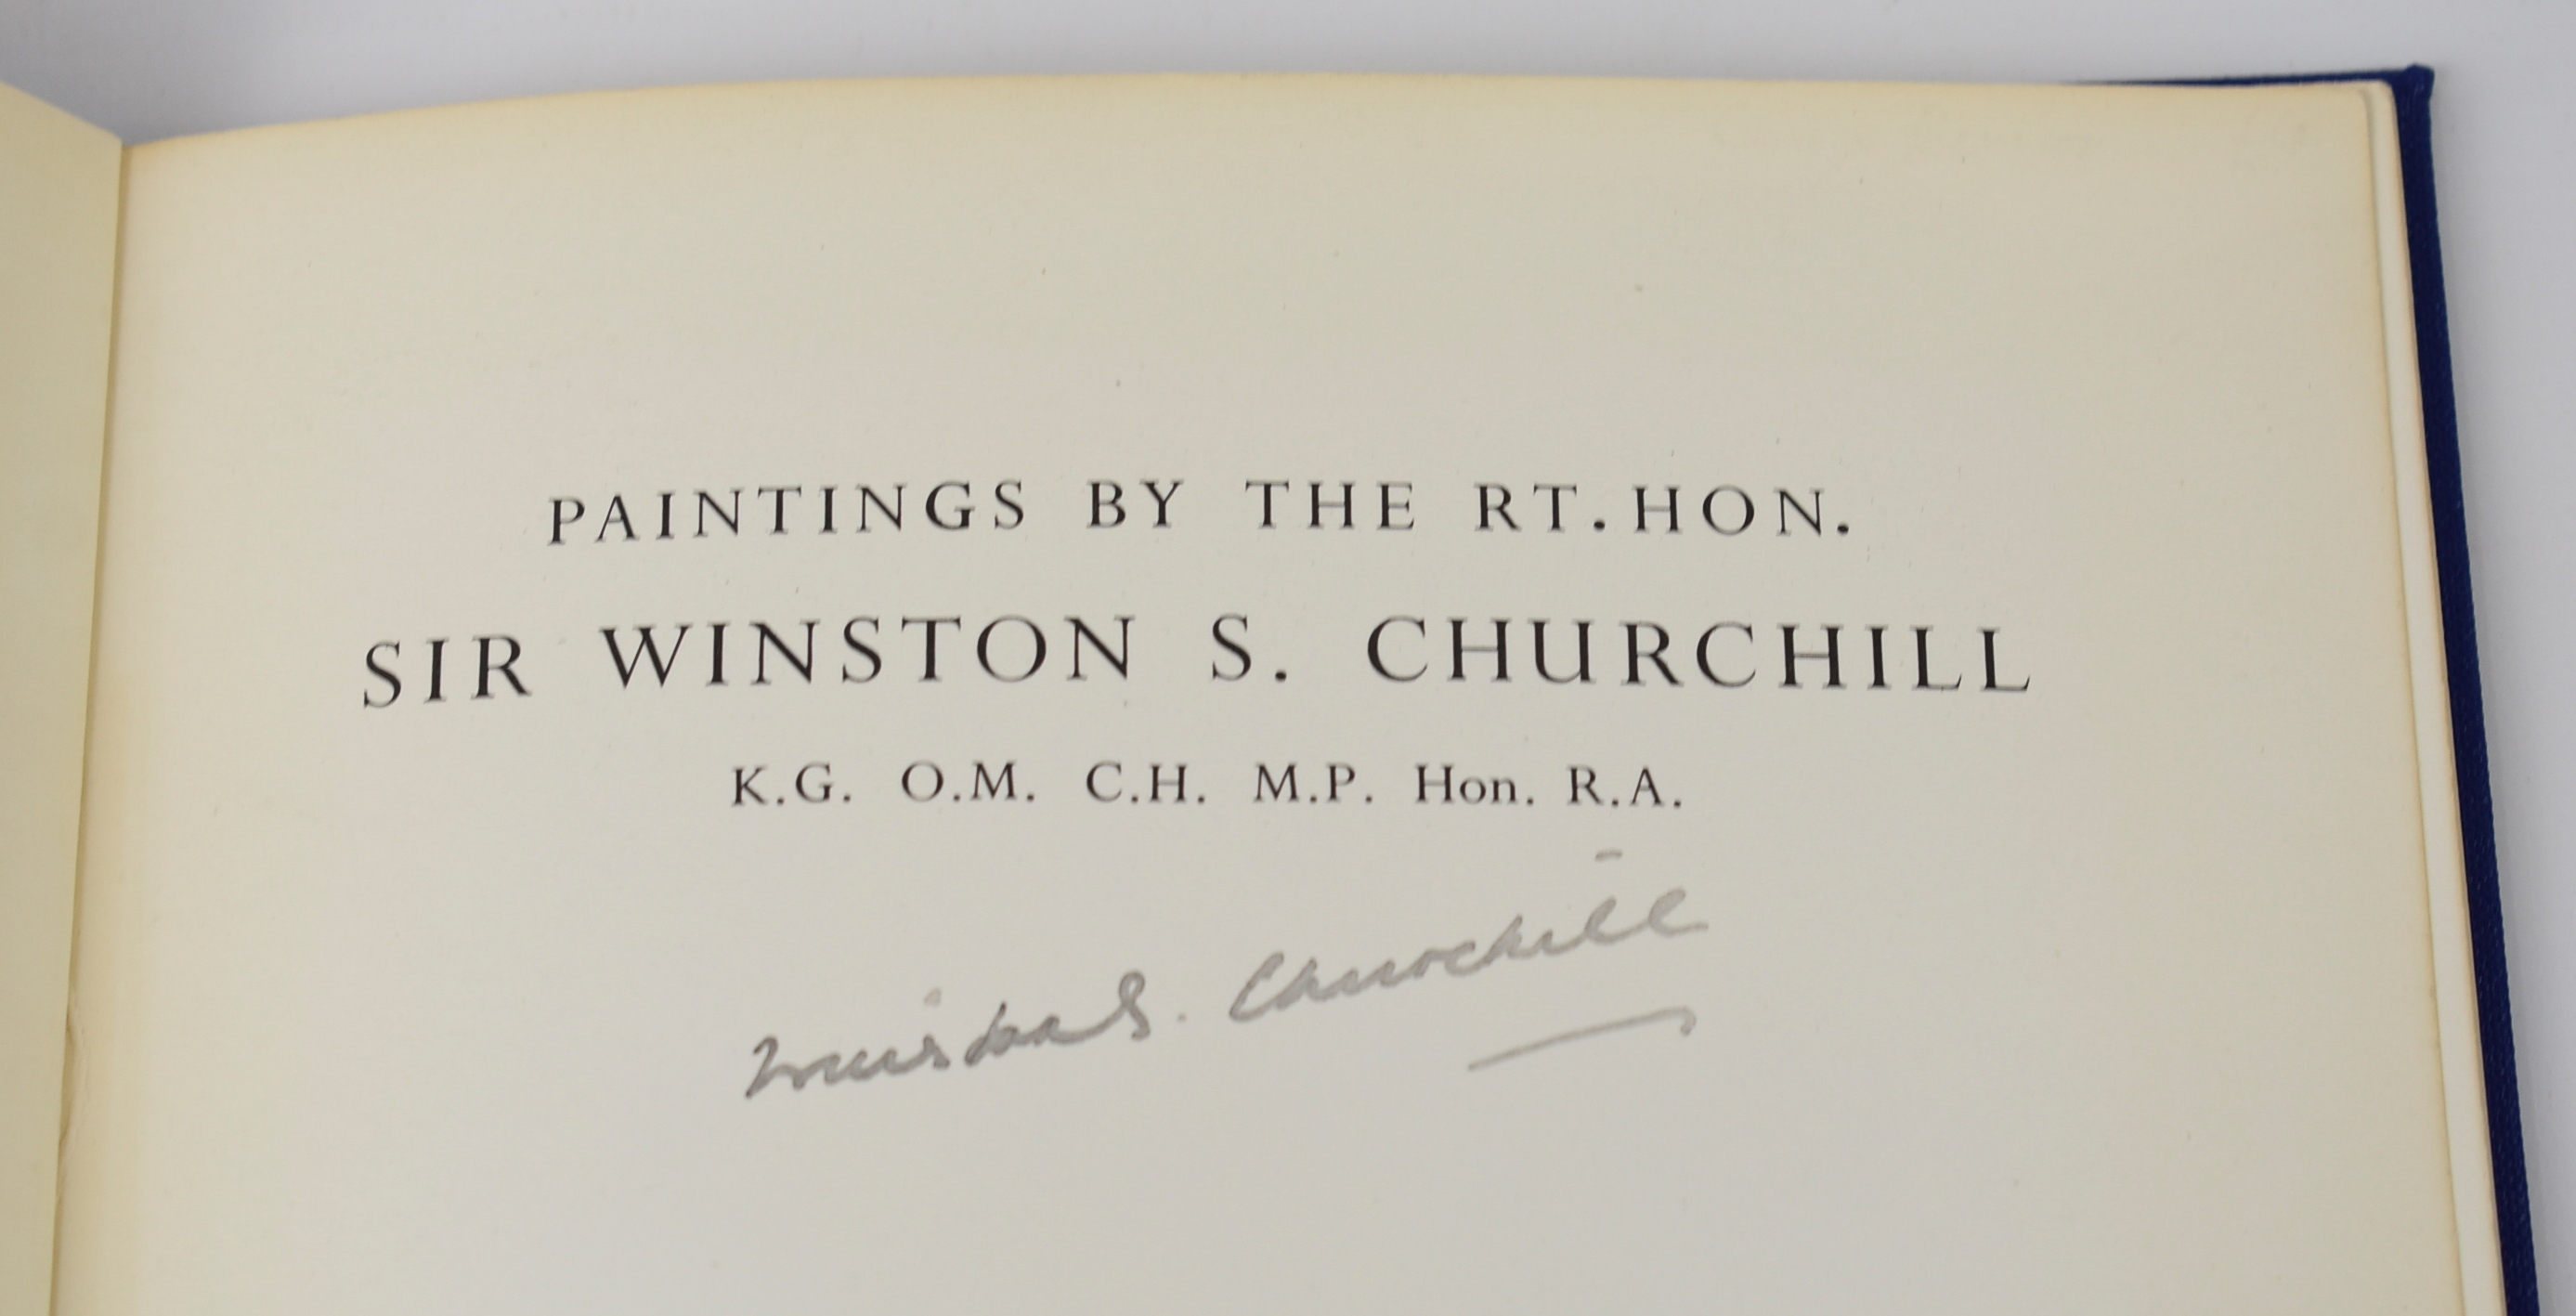 Image for Paintings By The Rt. Hon. Sir Winston S. Churchill, K. G. O. M. C. H. M. P. Hon. R. A. SIGNED BY WINSTON CHURCHILL. A Catalogue compiled by David Coombs. Foreword by Lady Spencer-Churchill.